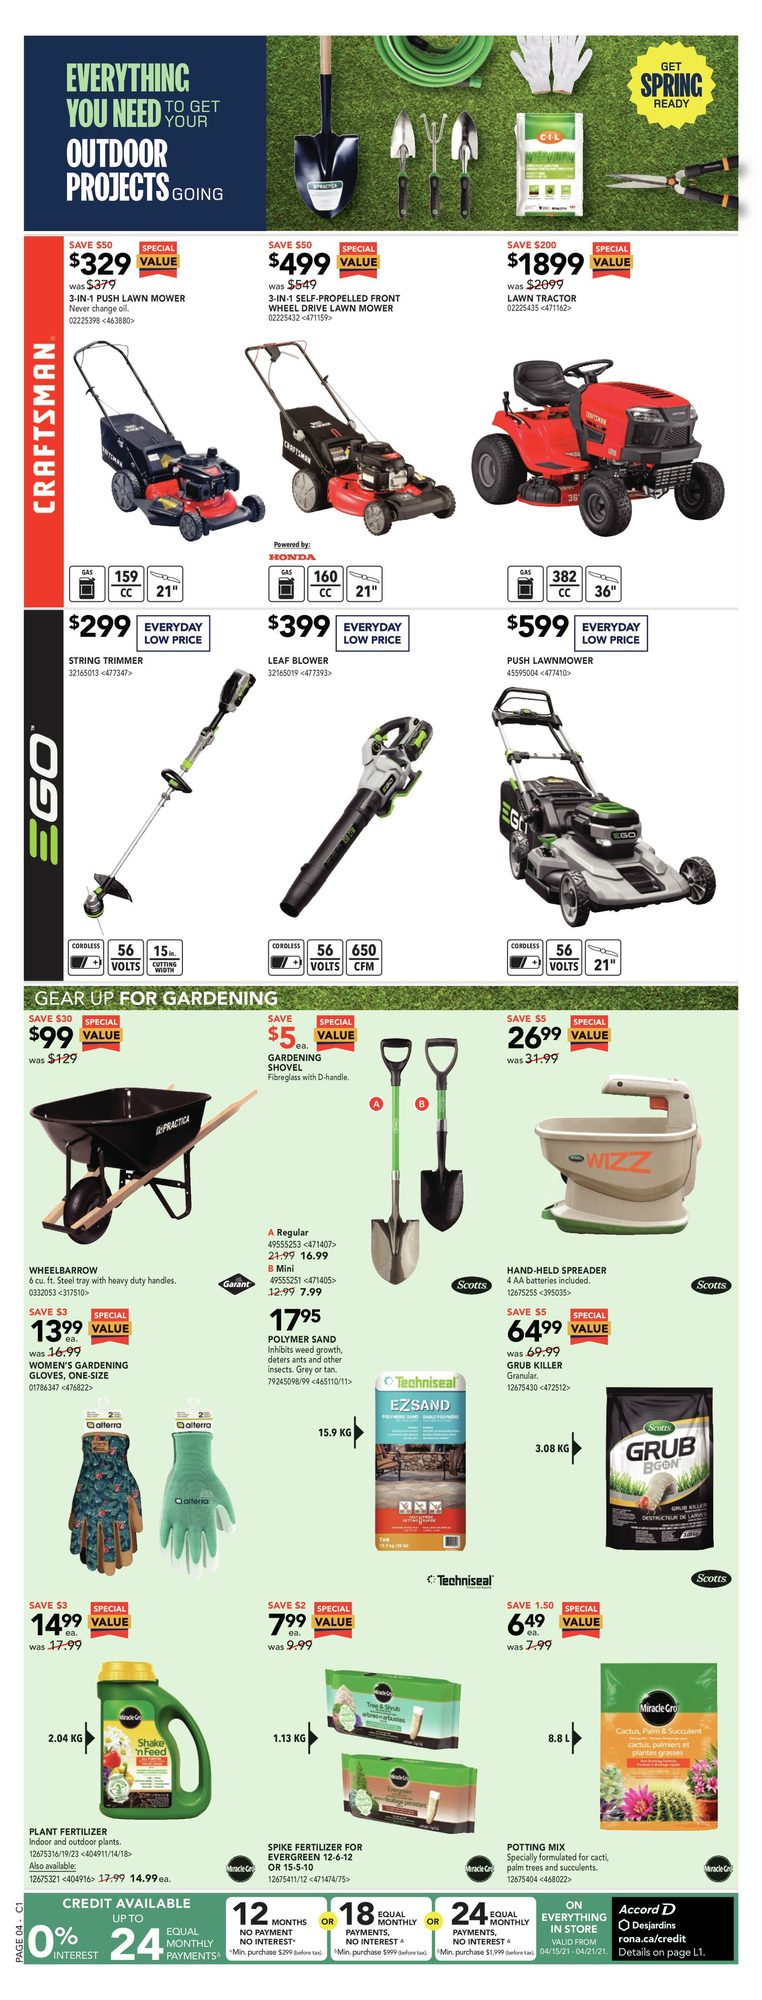 Rona - Weekly Flyer Specials - Page 5